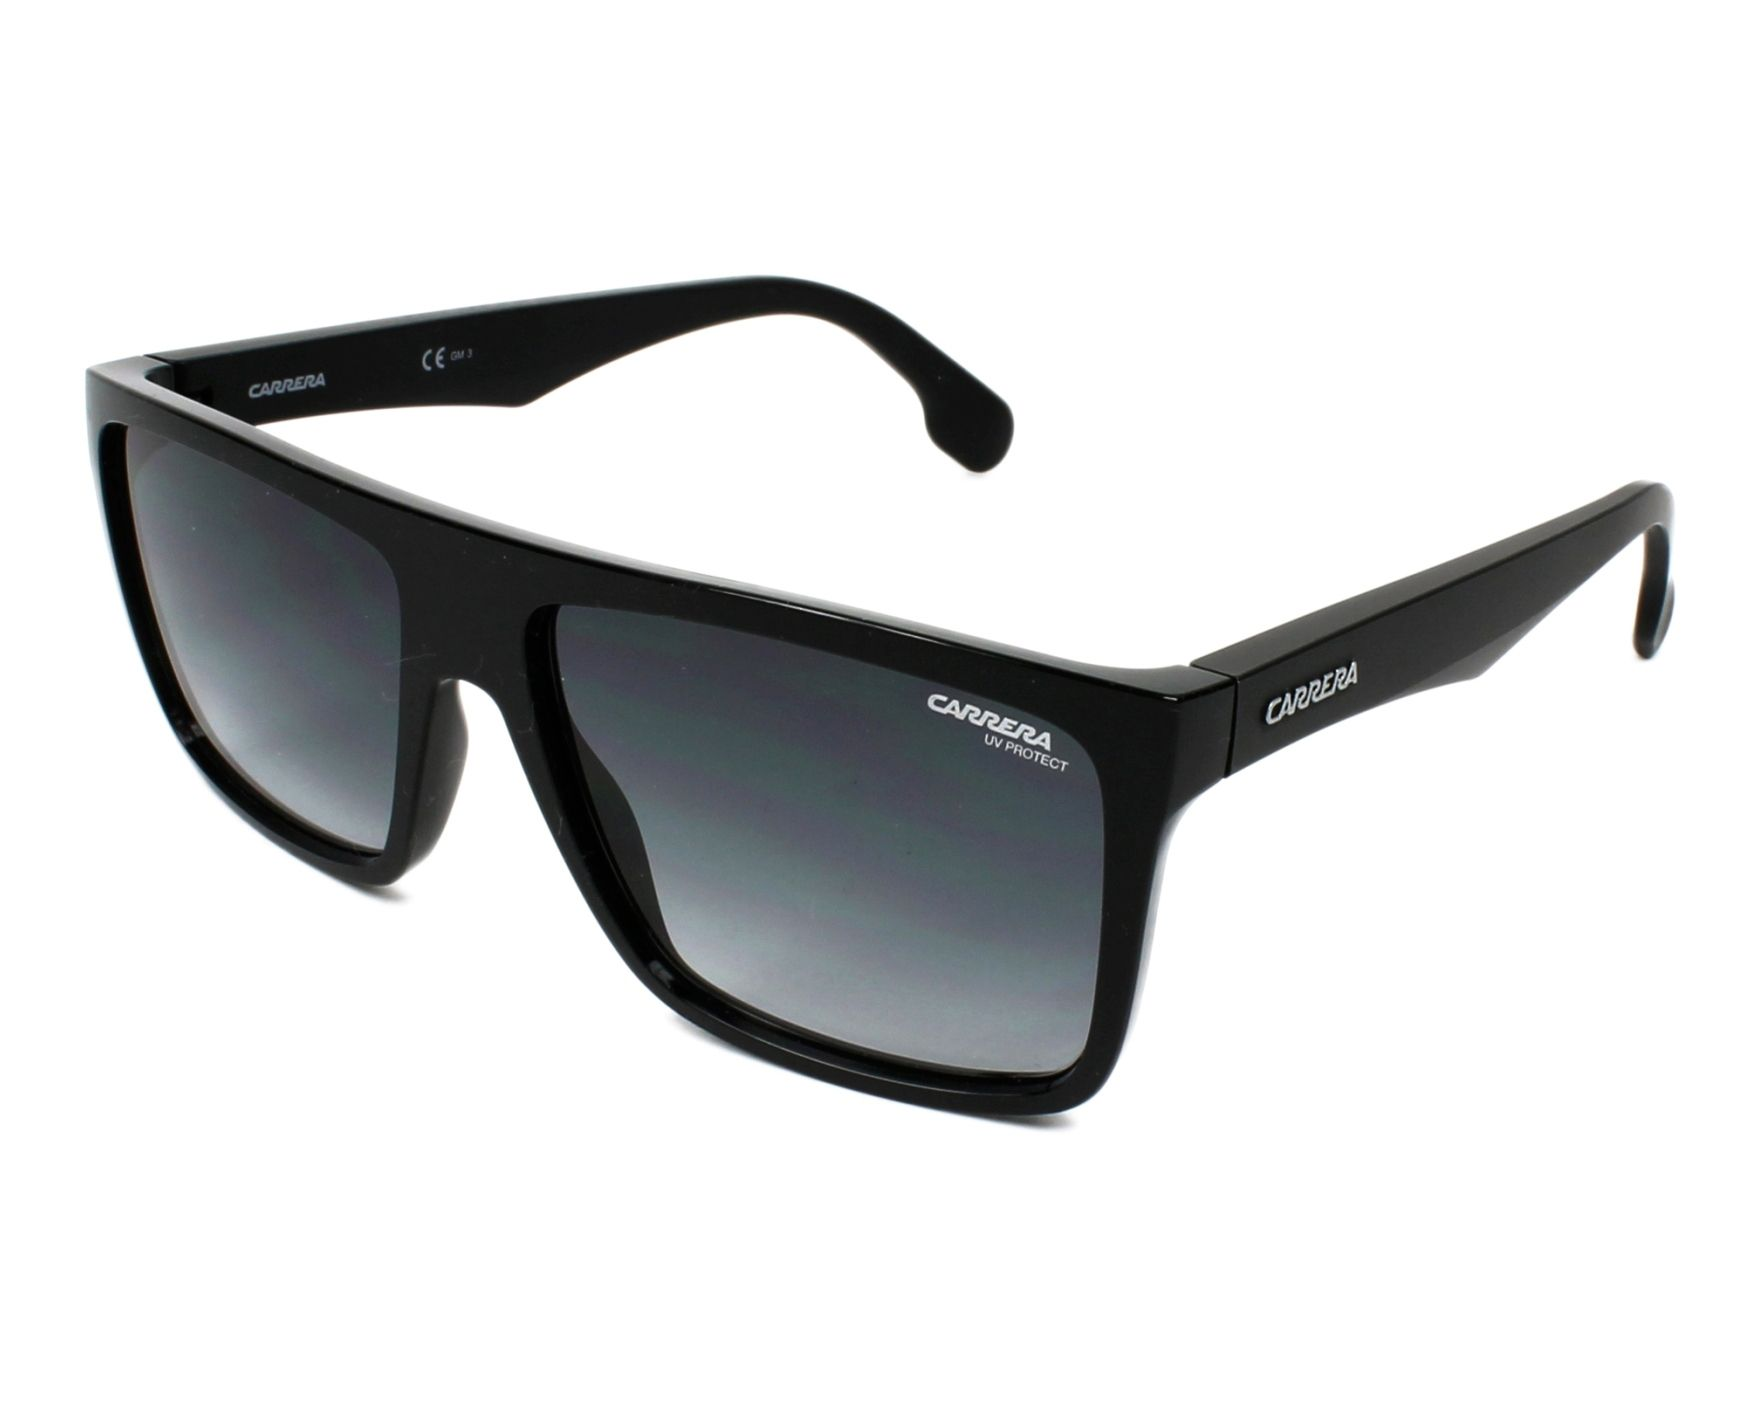 Buy Carrera Sunglasses 5039-S 807/9O Online